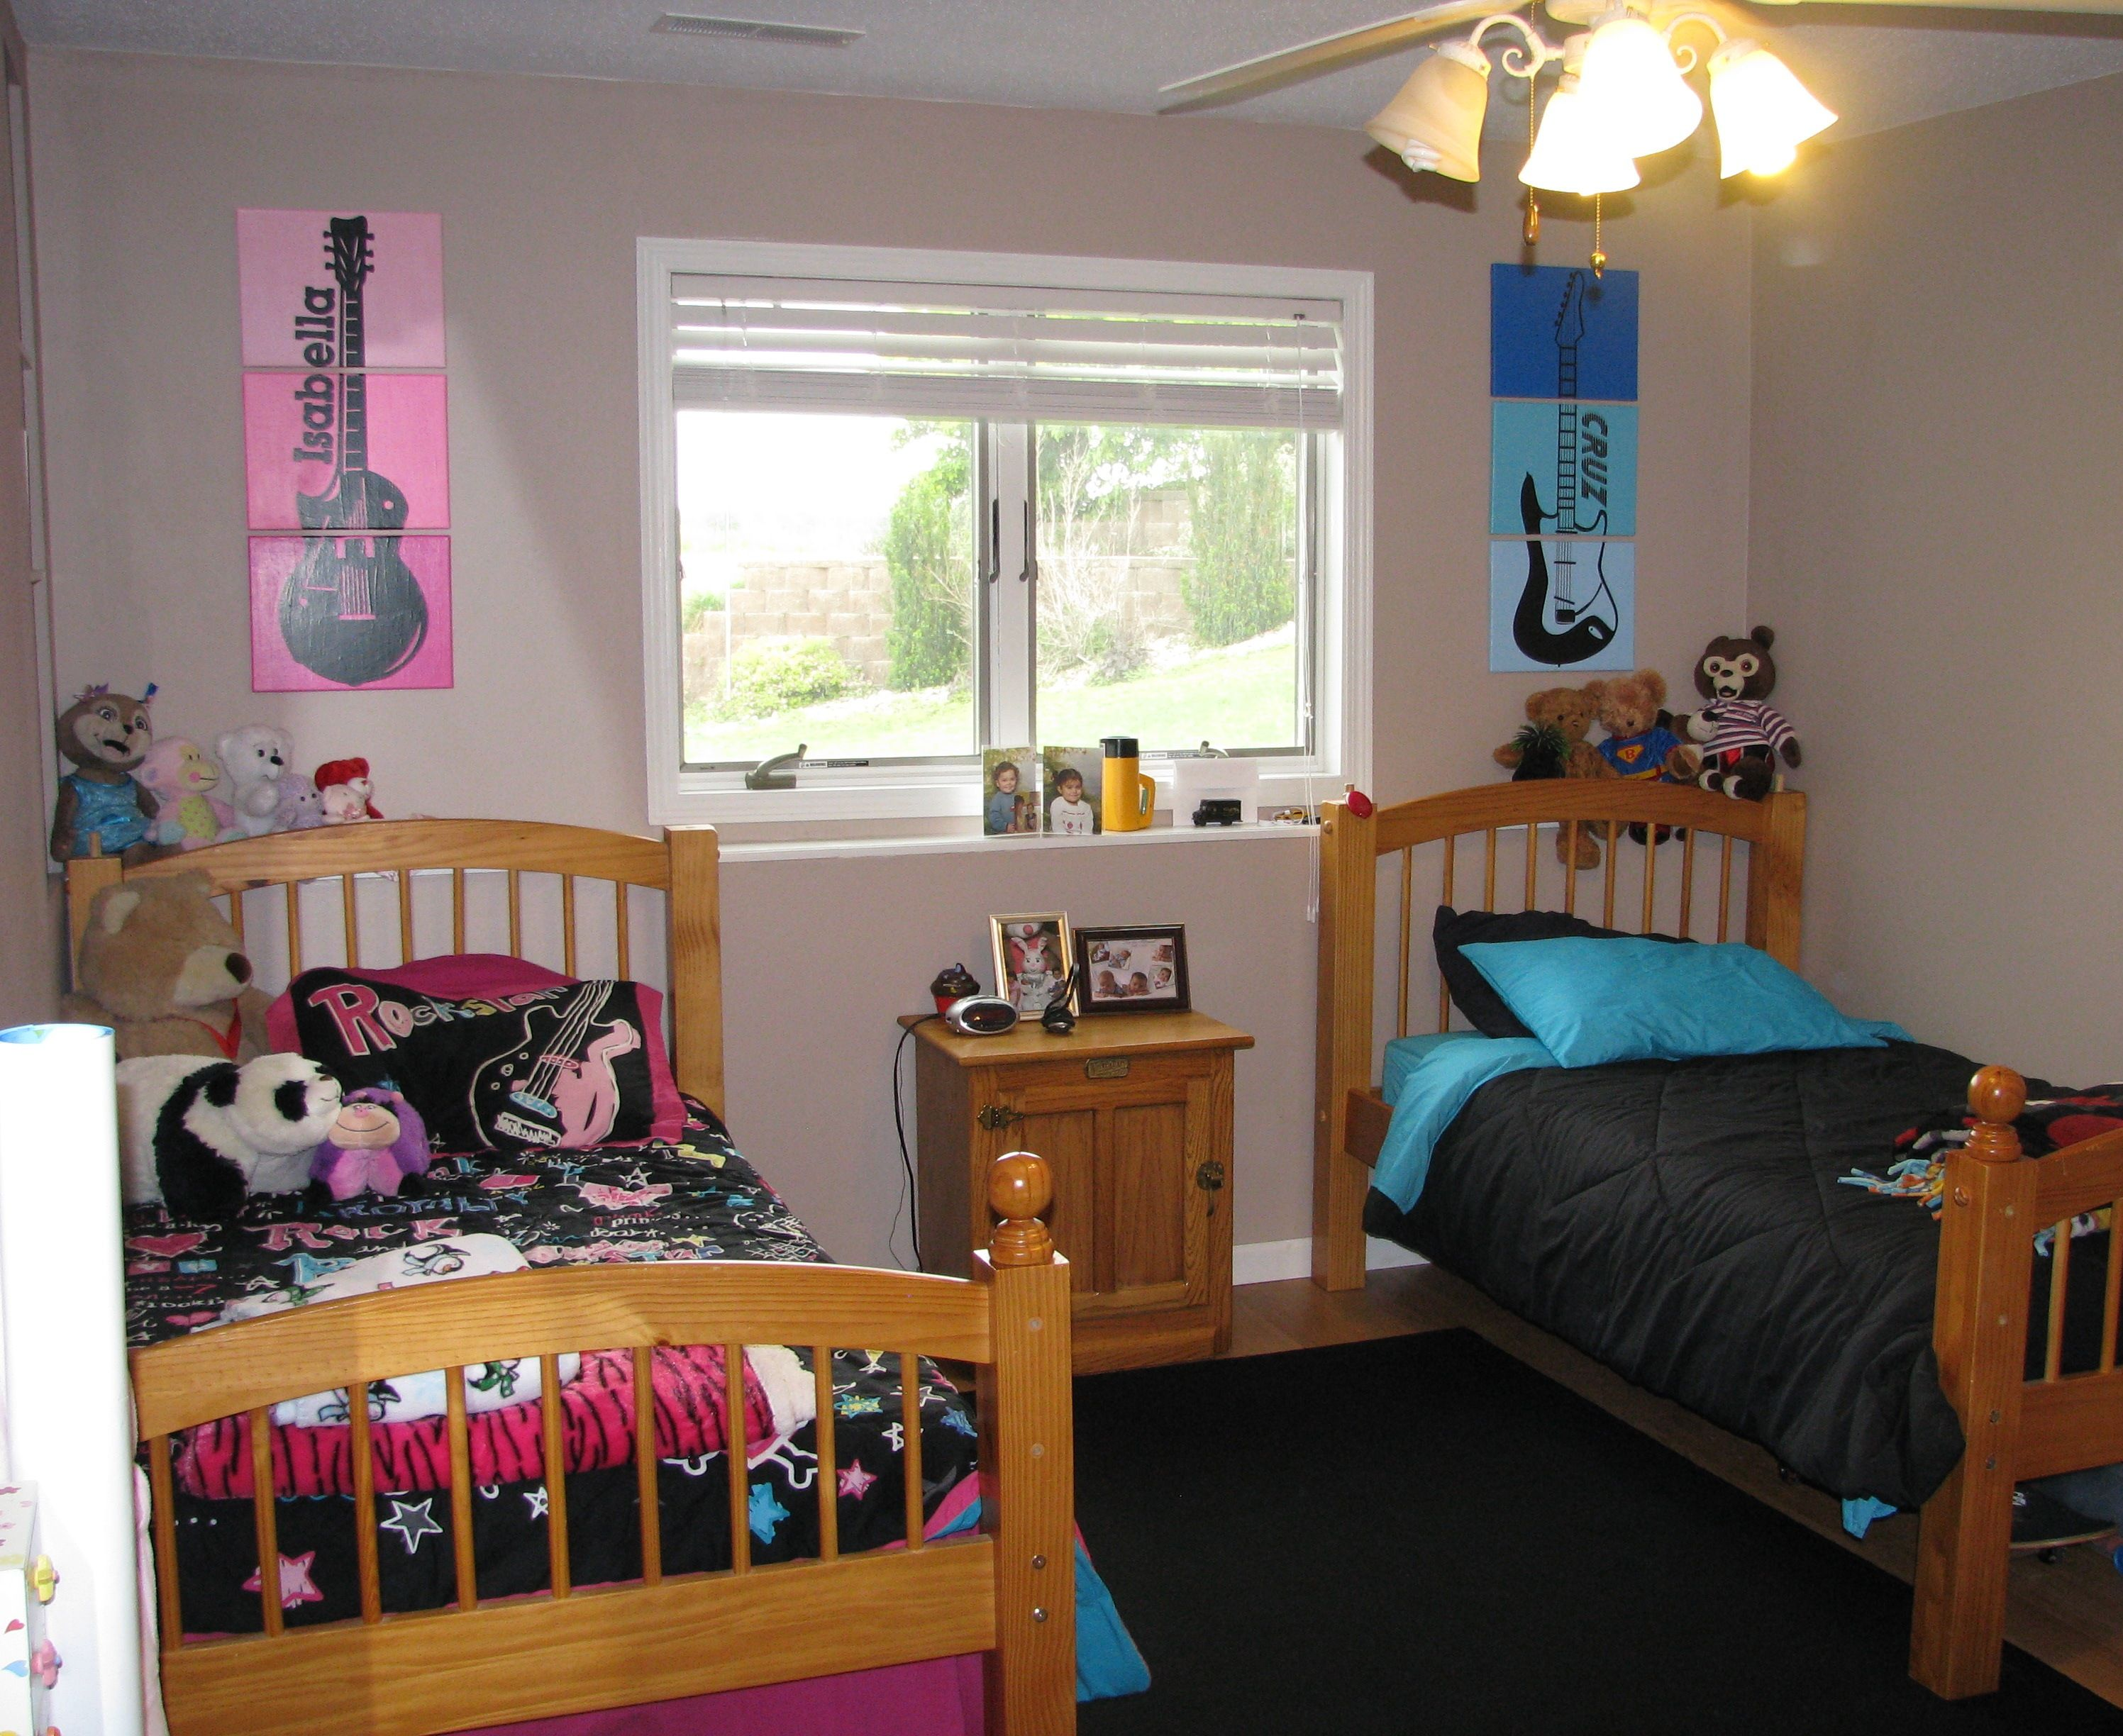 Rock 39 n roll guitar bedroom for my 7 year old twins boy - Bedroom ideas for 3 year old boy ...